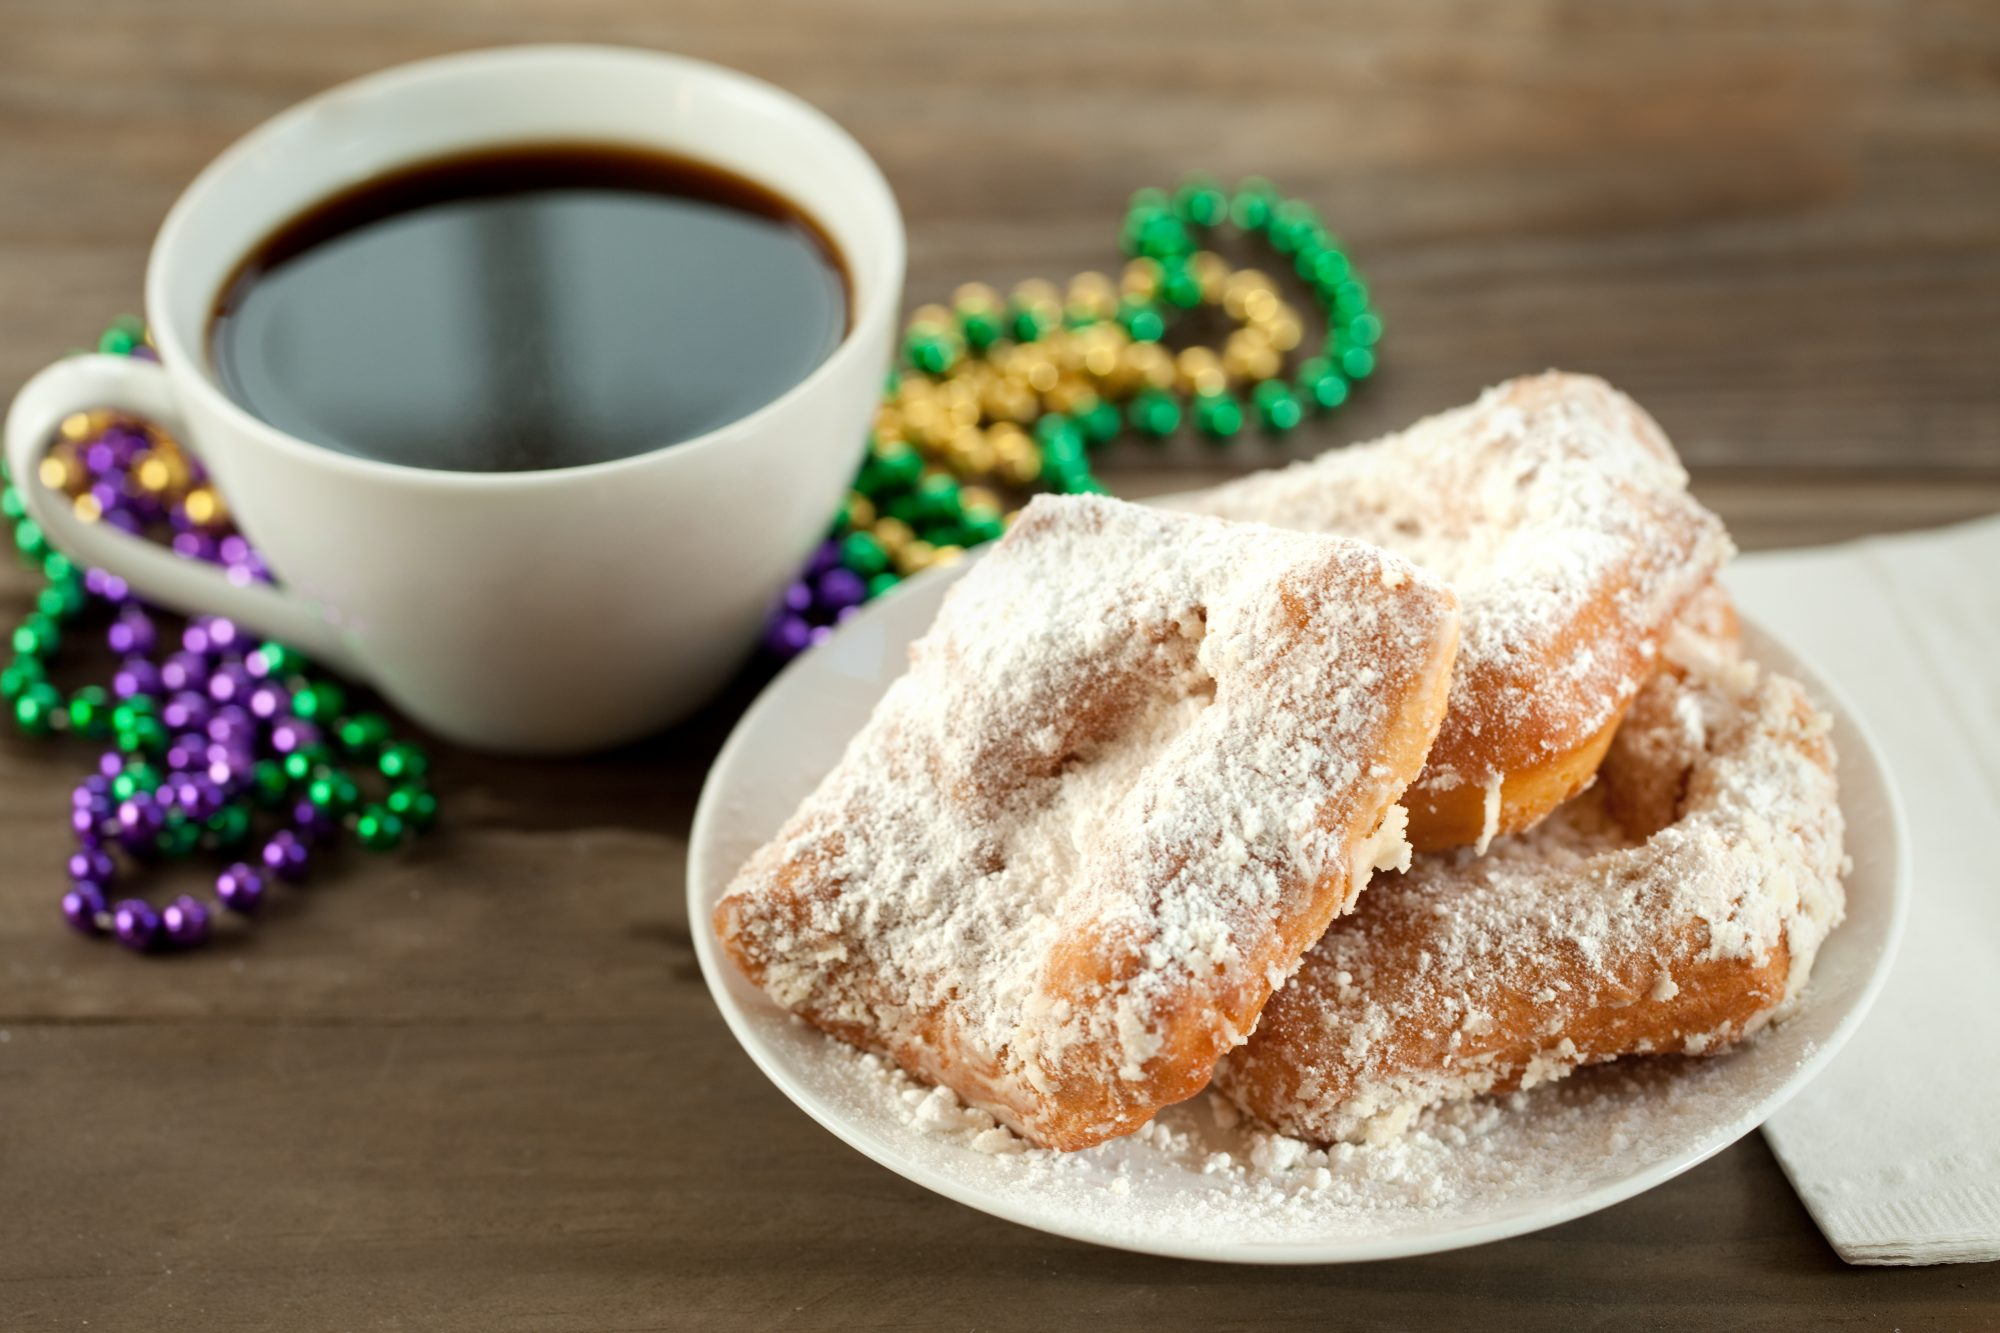 What Is a Beignet and How Do You Make One? Crynfiction